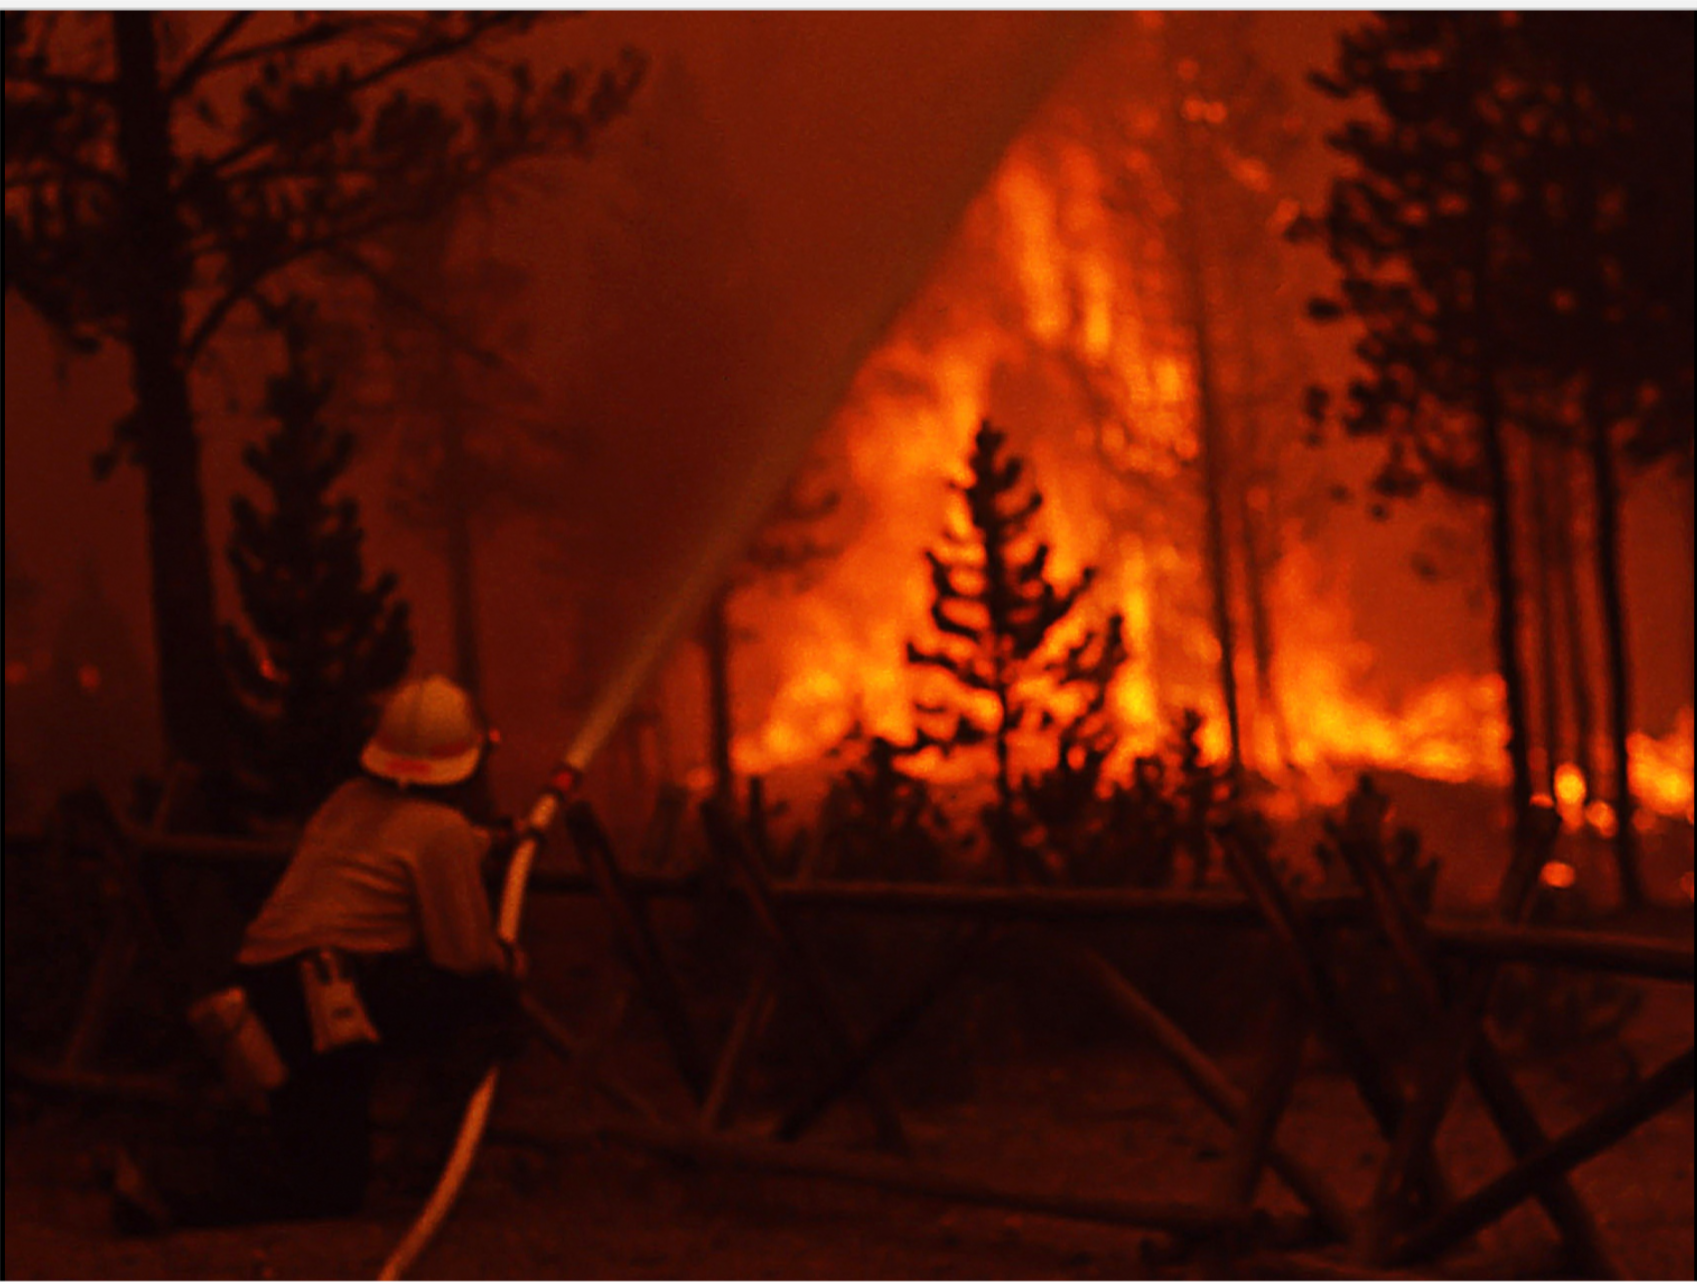 """Firefighting at Norris on August 20, 1988, a day that was later dubbed """"Black Saturday"""" due to the huge amount of land that was burned as well as the dense smoke that turned daytime to night in some places.  Before the late 1960s, fires were generally believed to be detrimental for parks and forests, and management policies were aimed at suppressing fires as quickly as possible.  However, as the beneficial ecological role of fire became better understood in the decades before 1988, a policy was adopted of allowing natural fires to burn under controlled conditions, which proved highly successful in reducing the area lost annually to wildfires."""